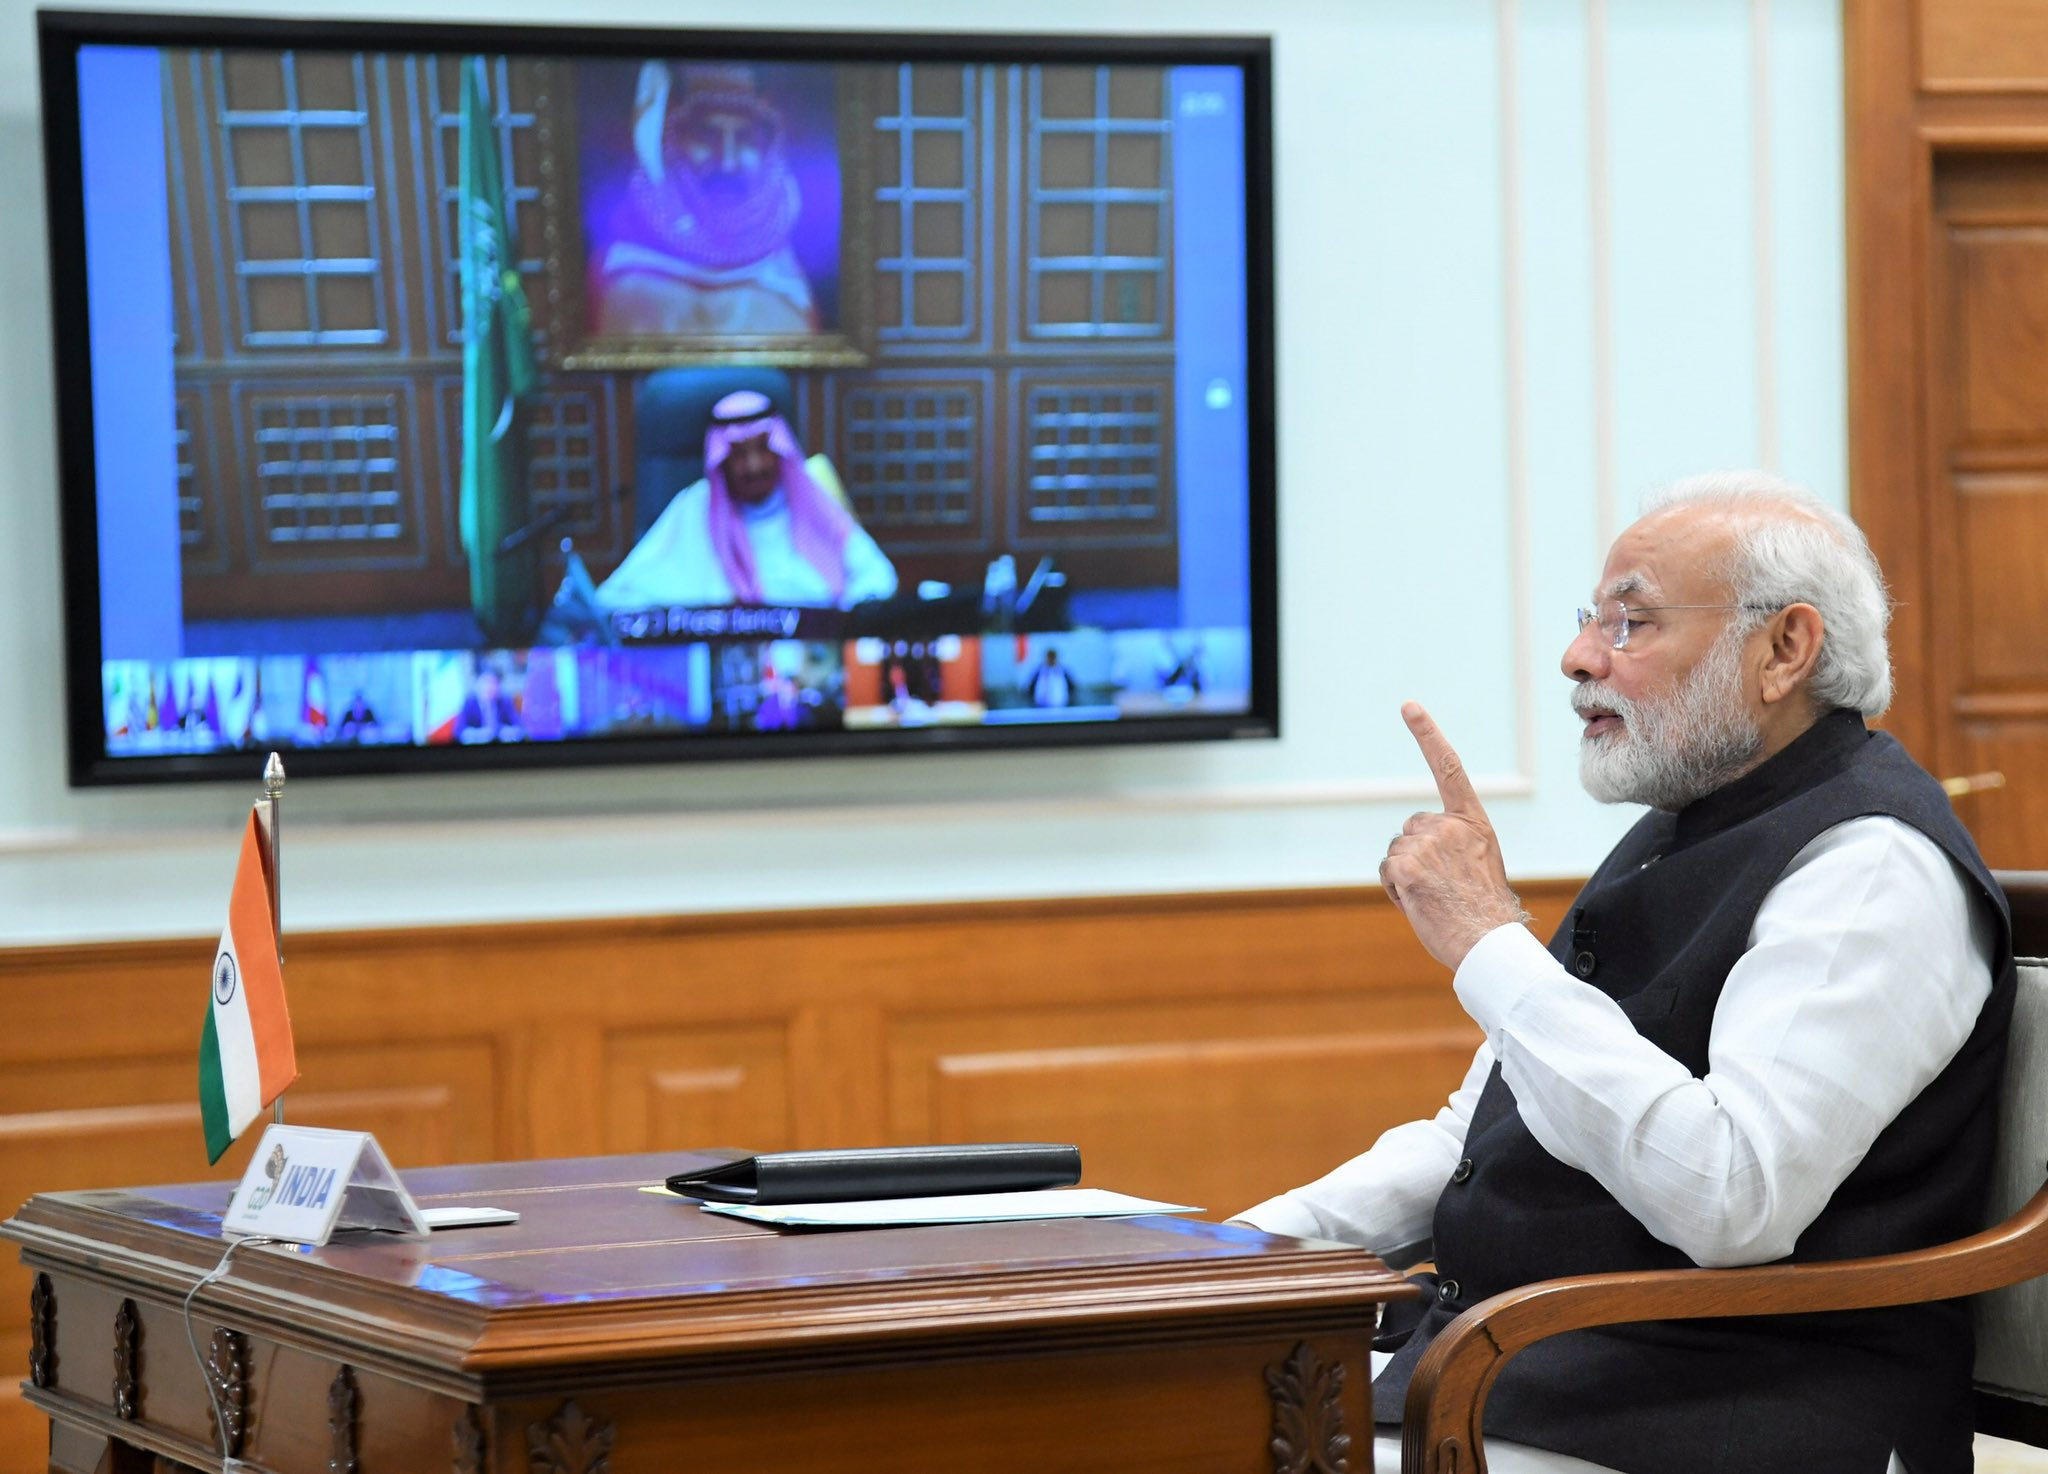 Indian PM Modi calls UAE's Sheikh Mohamed bilaterally after the G20 Virtual Summit. Photo Courtesy MEAIndia Twitter